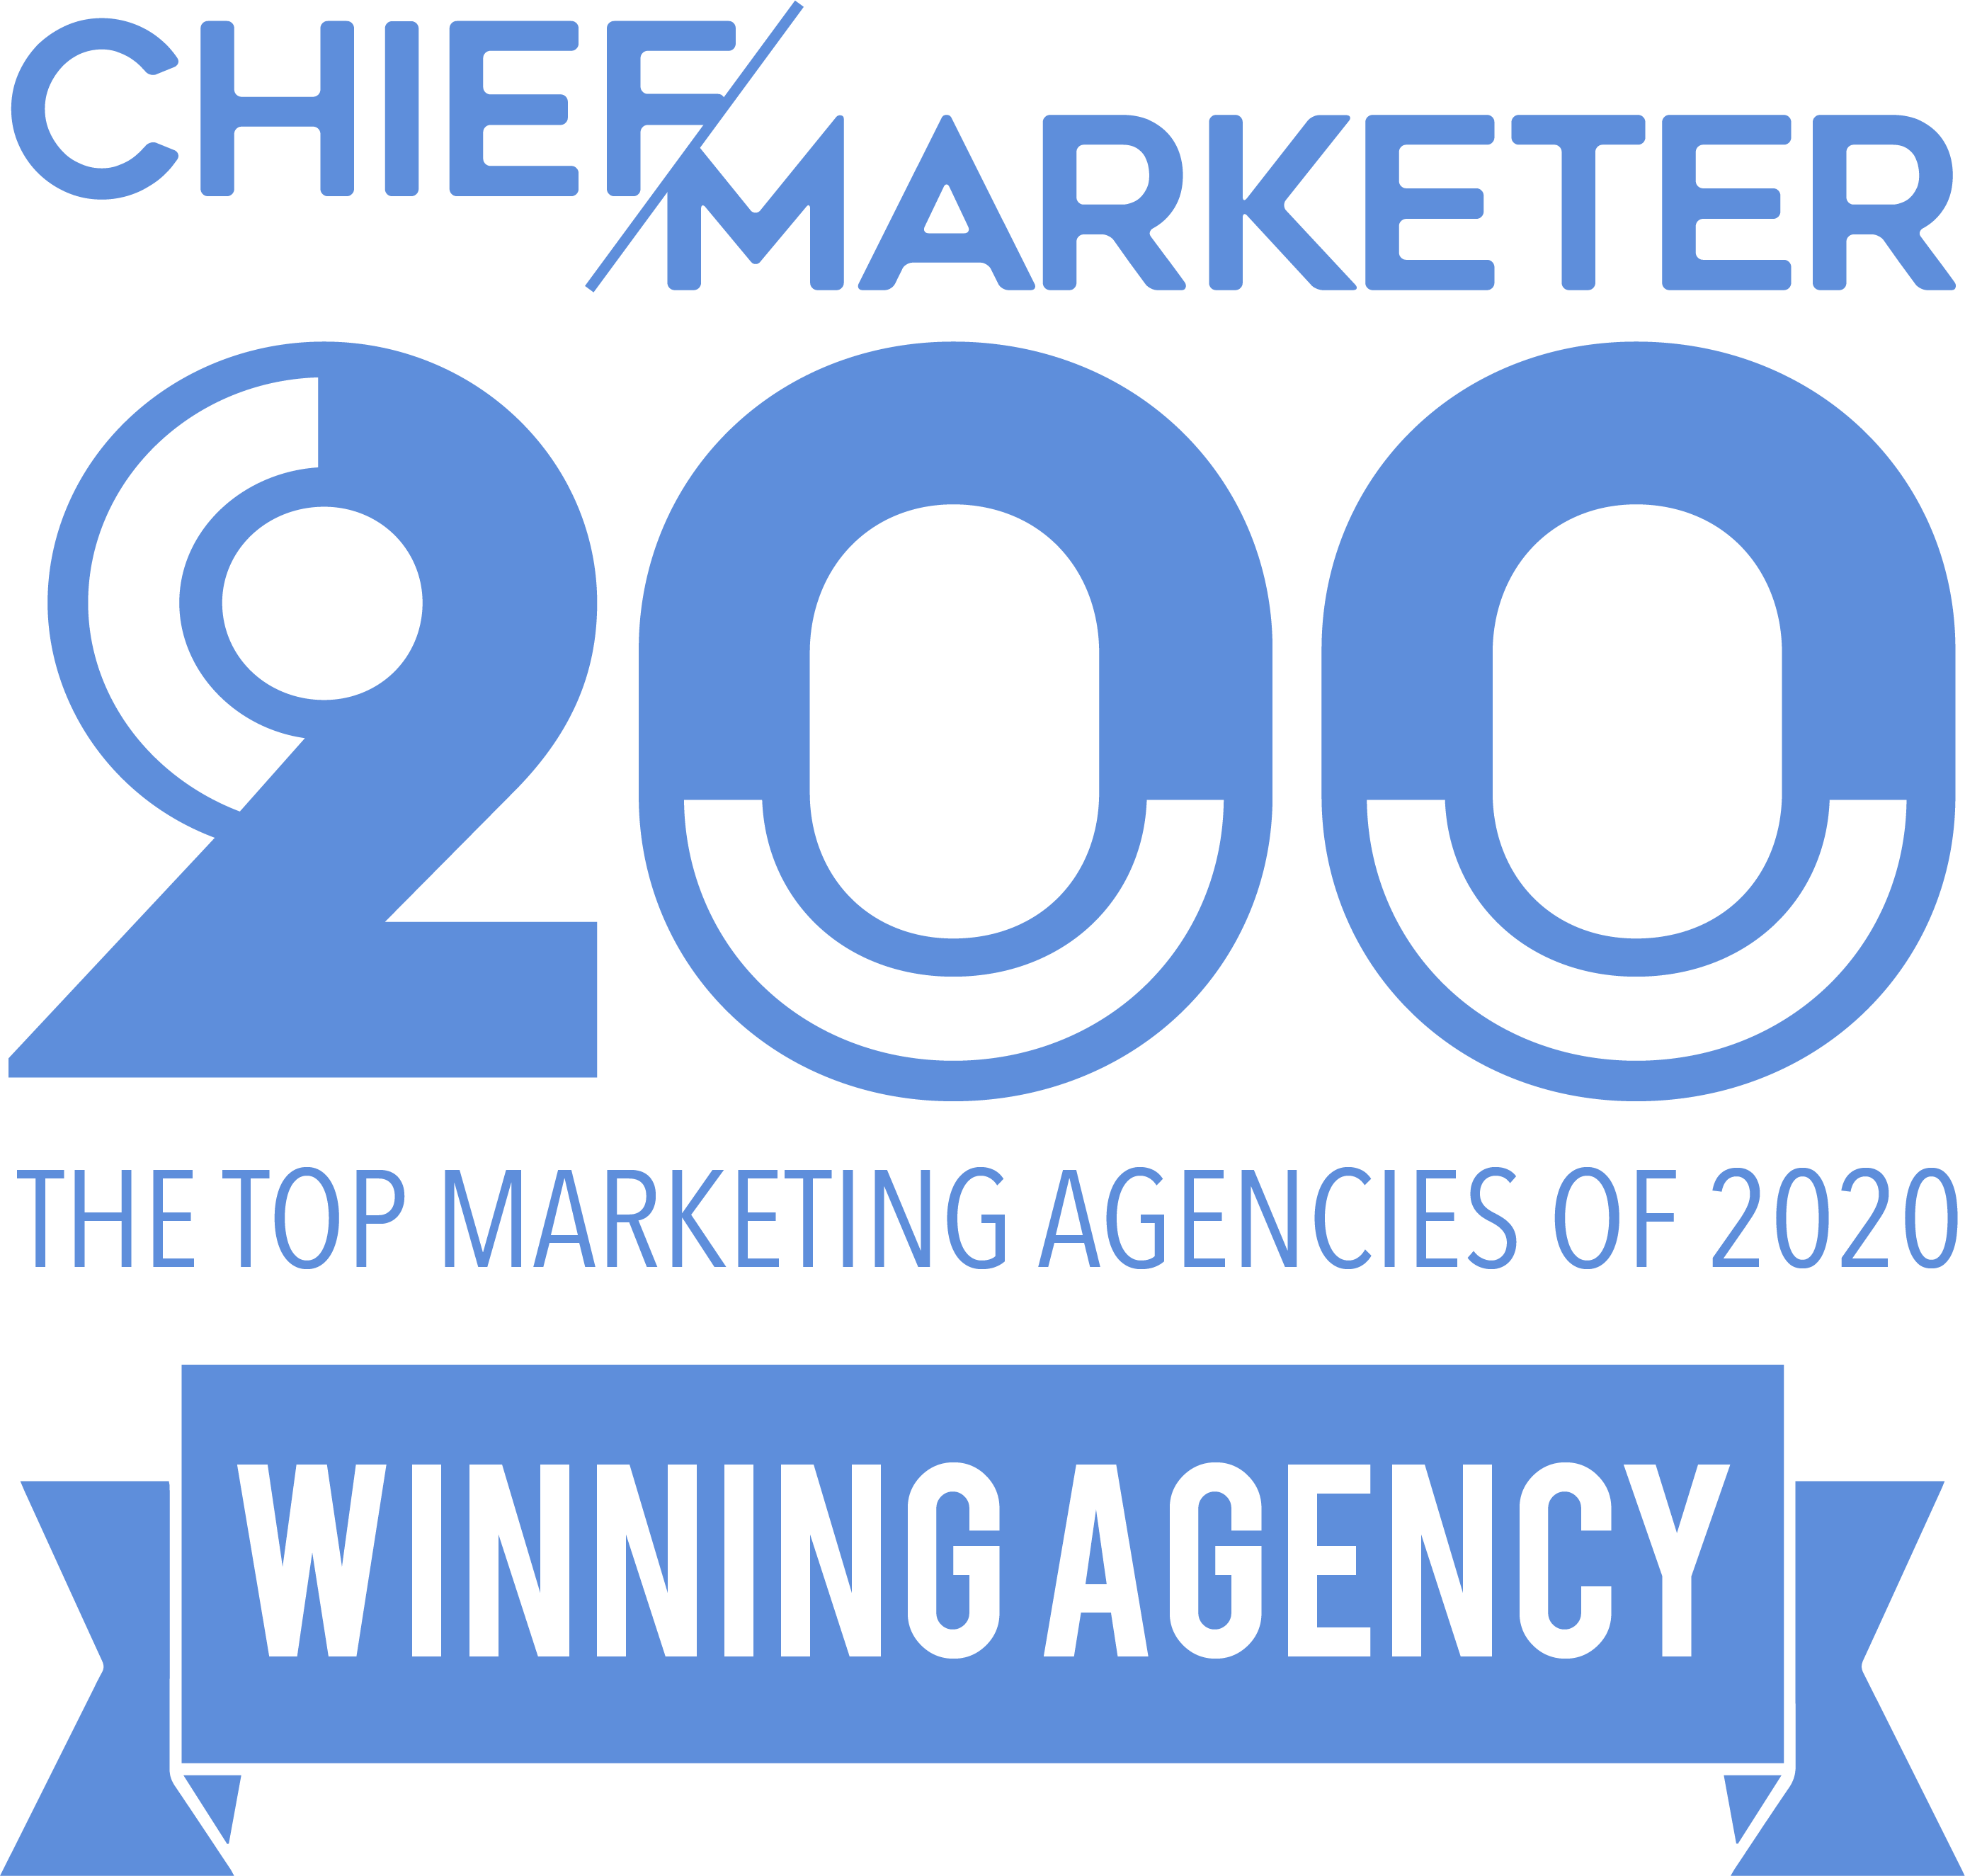 Chief Marketer Recognizes Vye as a Top Agency